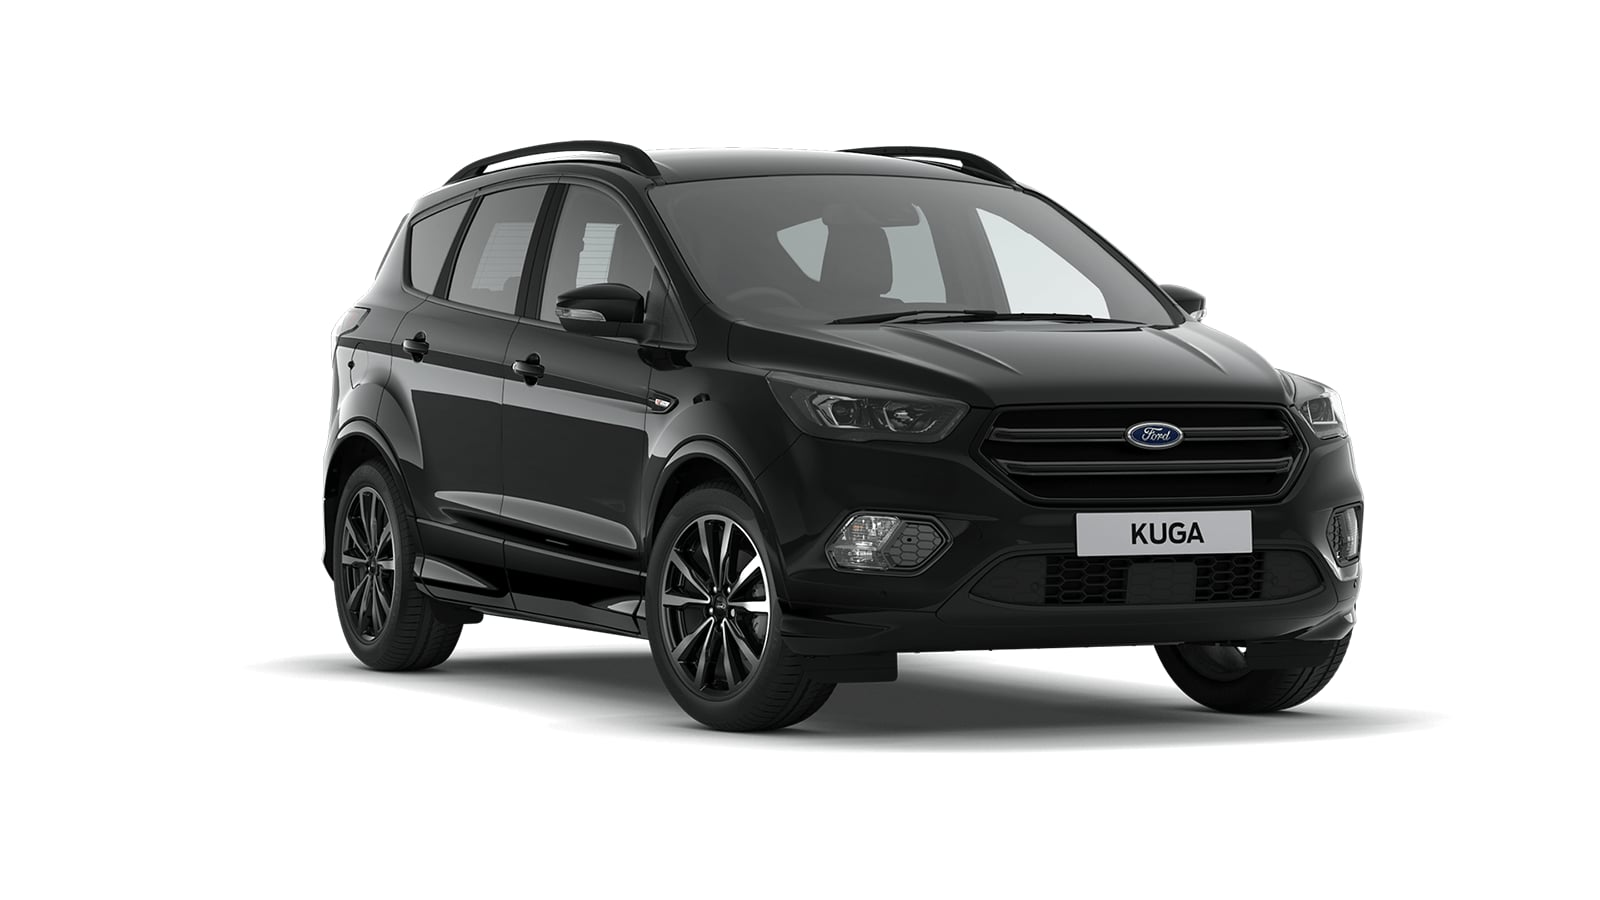 https://www.dealerinternet.co.uk/images/KUGA/2019.75/5%20Door/ST-Line/SHADOW-BLACK.png